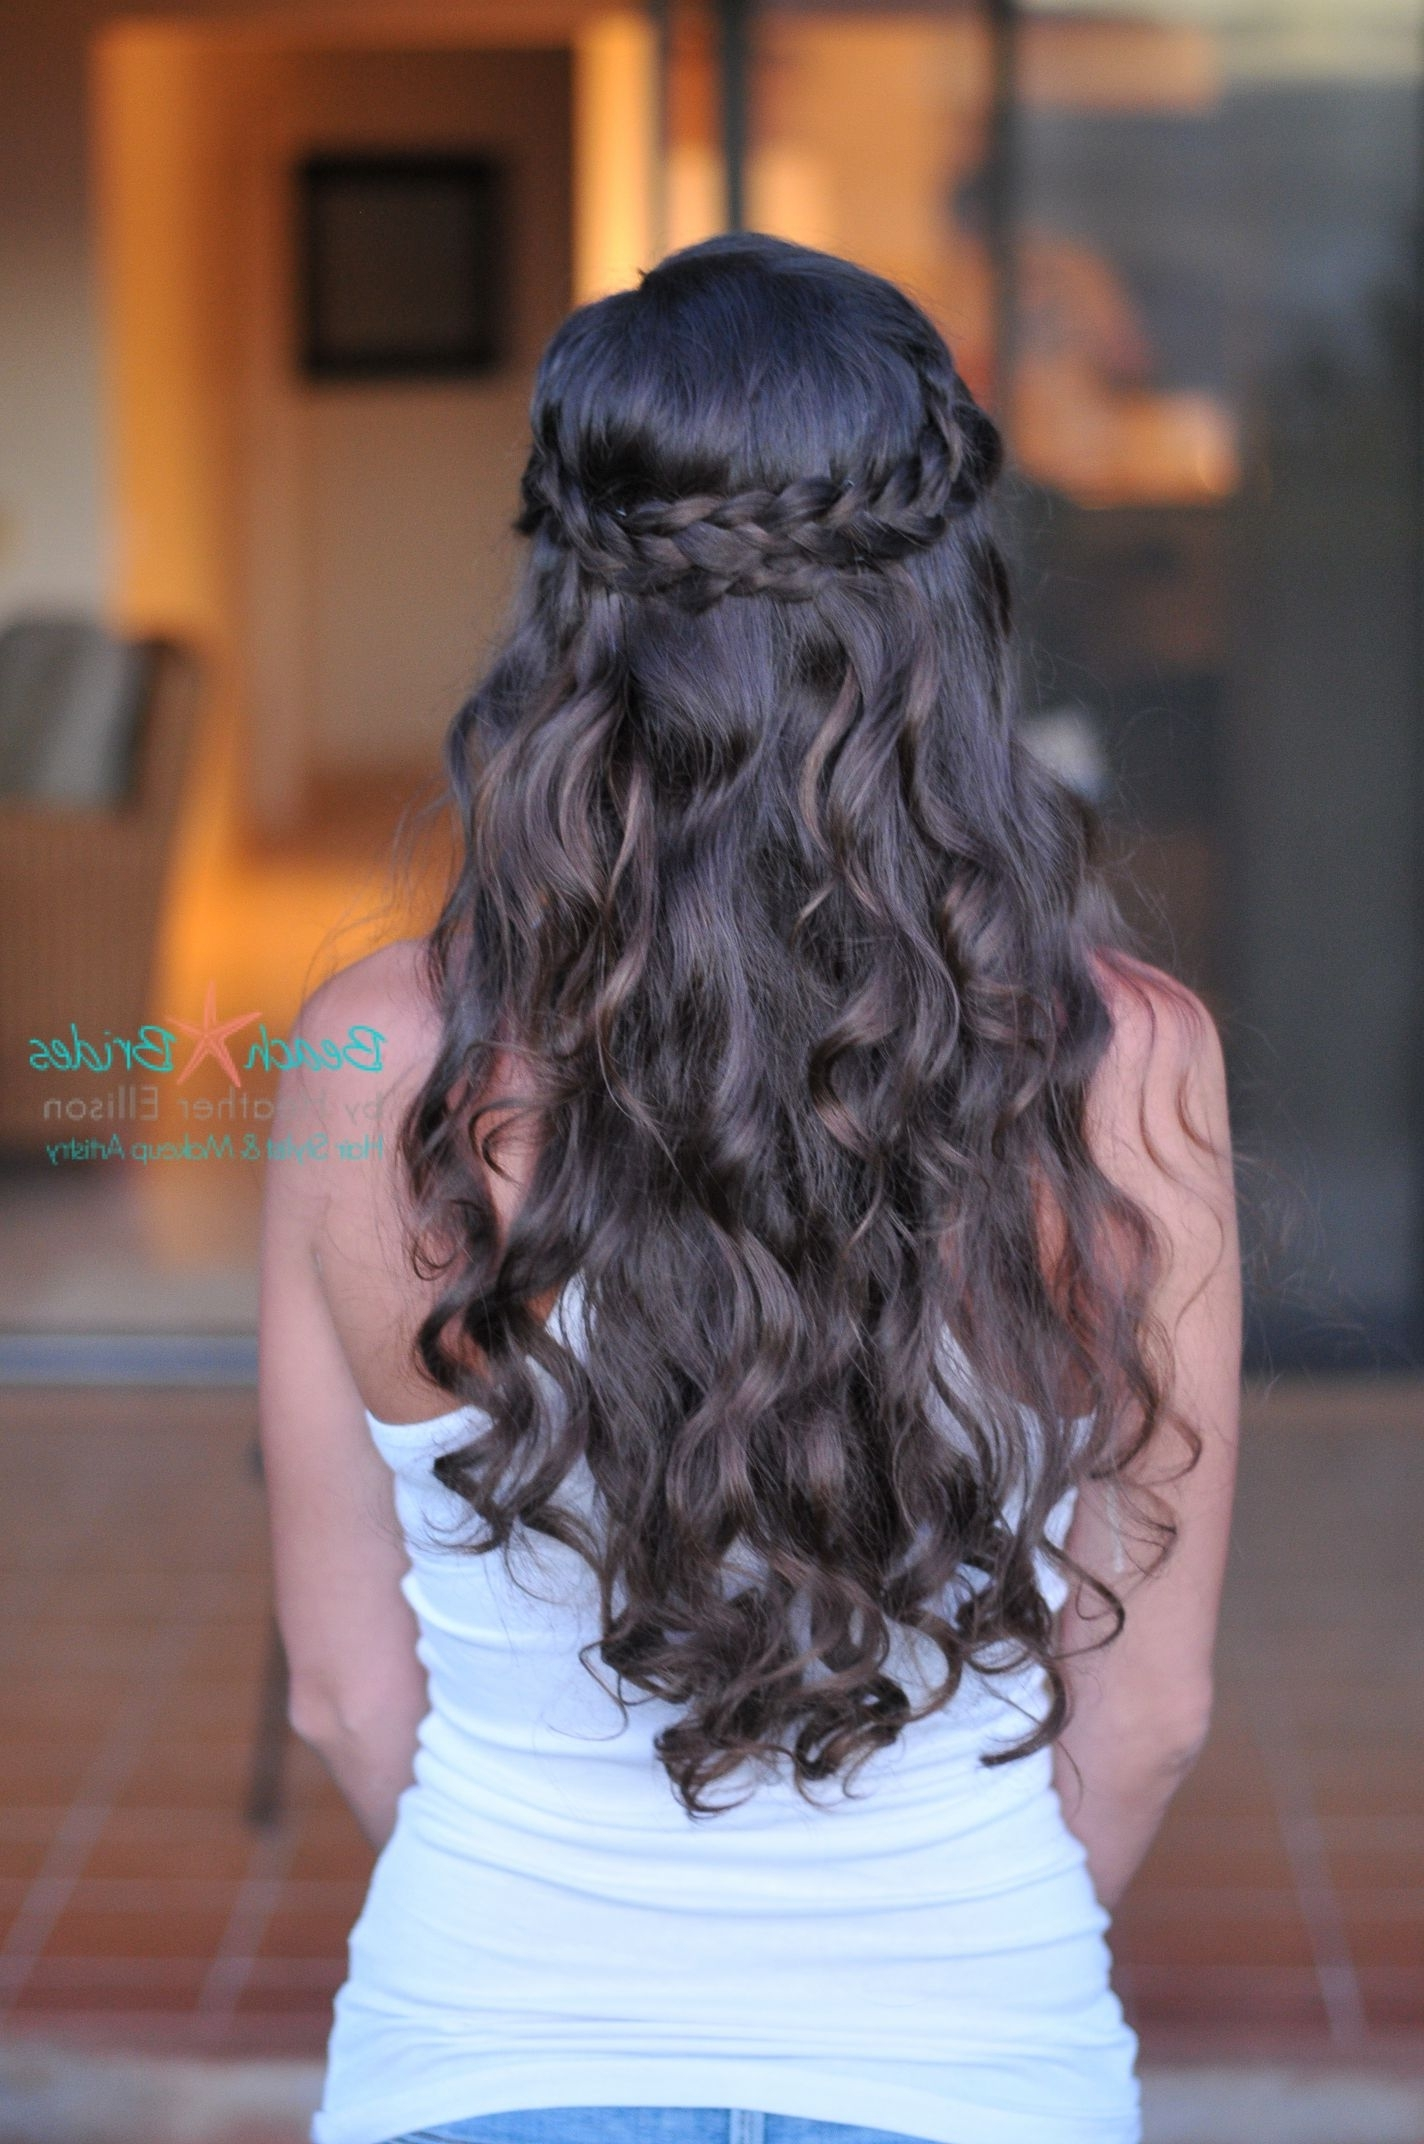 Popular Tied Up Wedding Hairstyles For Long Hair With Half Up With Braid. I Love This Wedding Hair Too (View 11 of 15)